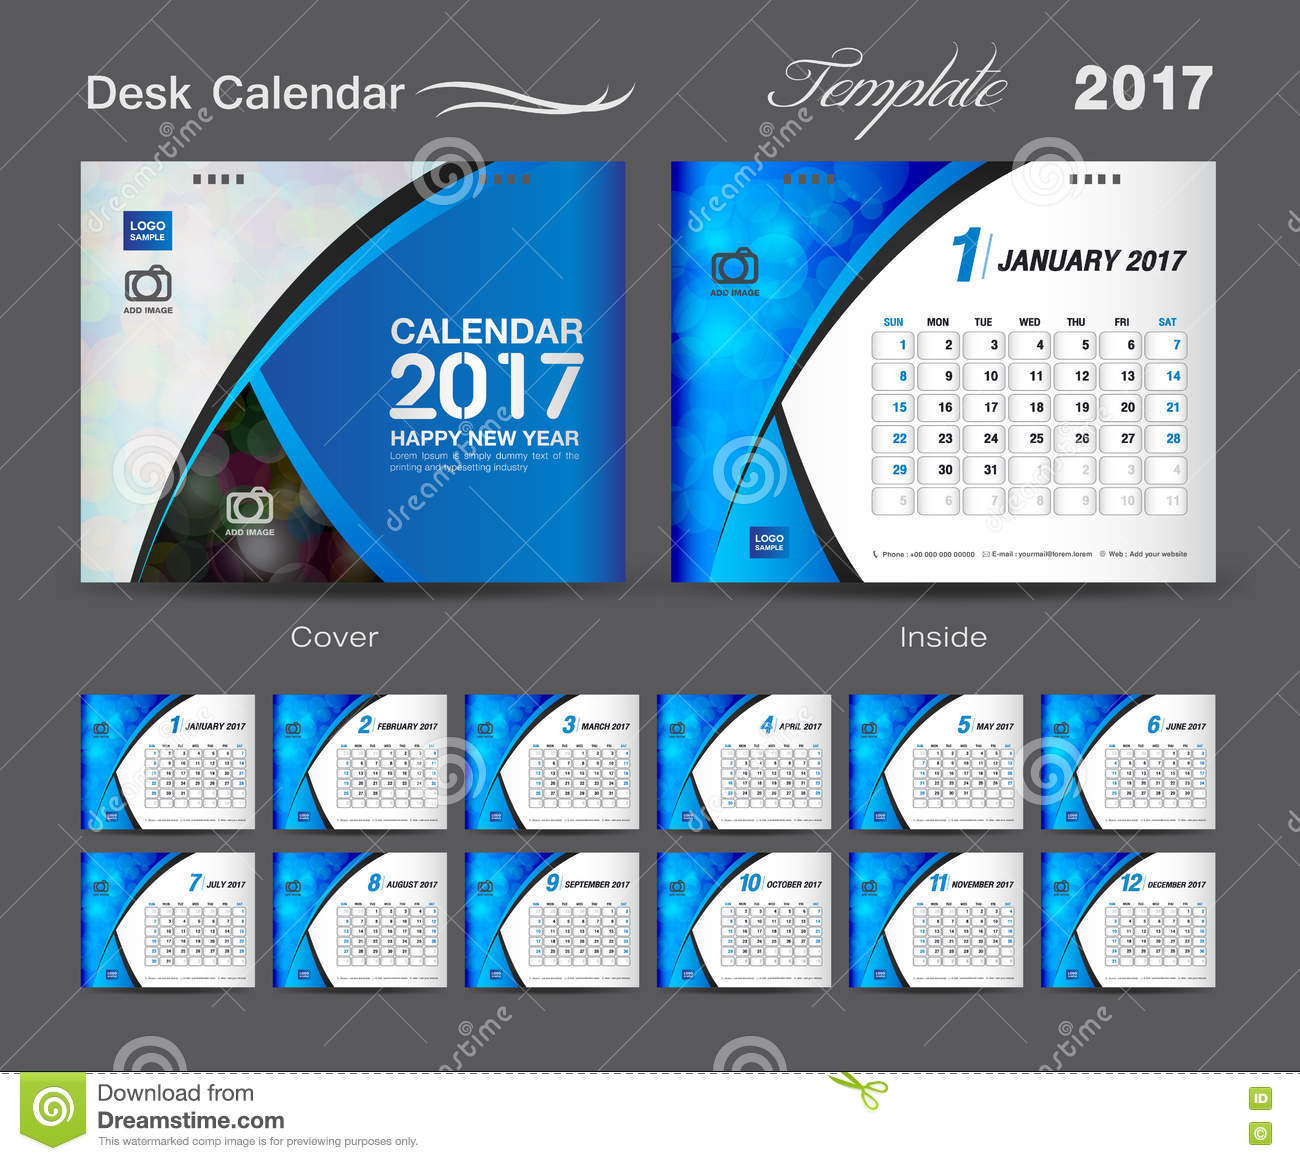 Business Calendar Design : Desk calendar template design set cover